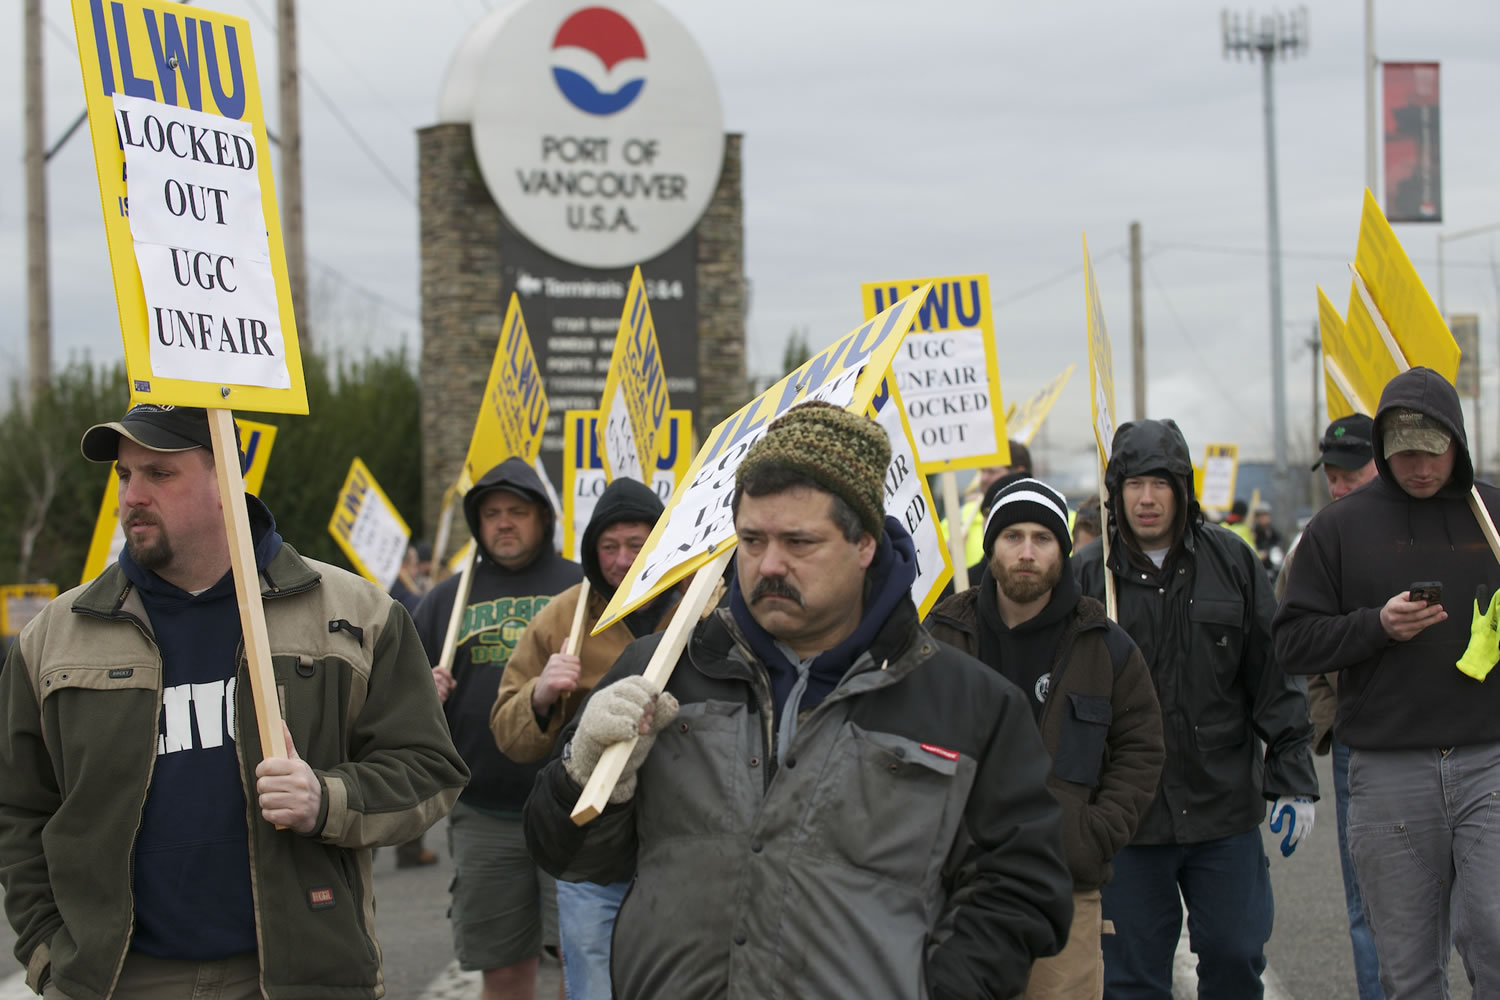 Nearly 50 workers picket outside the main entrance to the Port of Vancouver on Feb. 27, 2013.